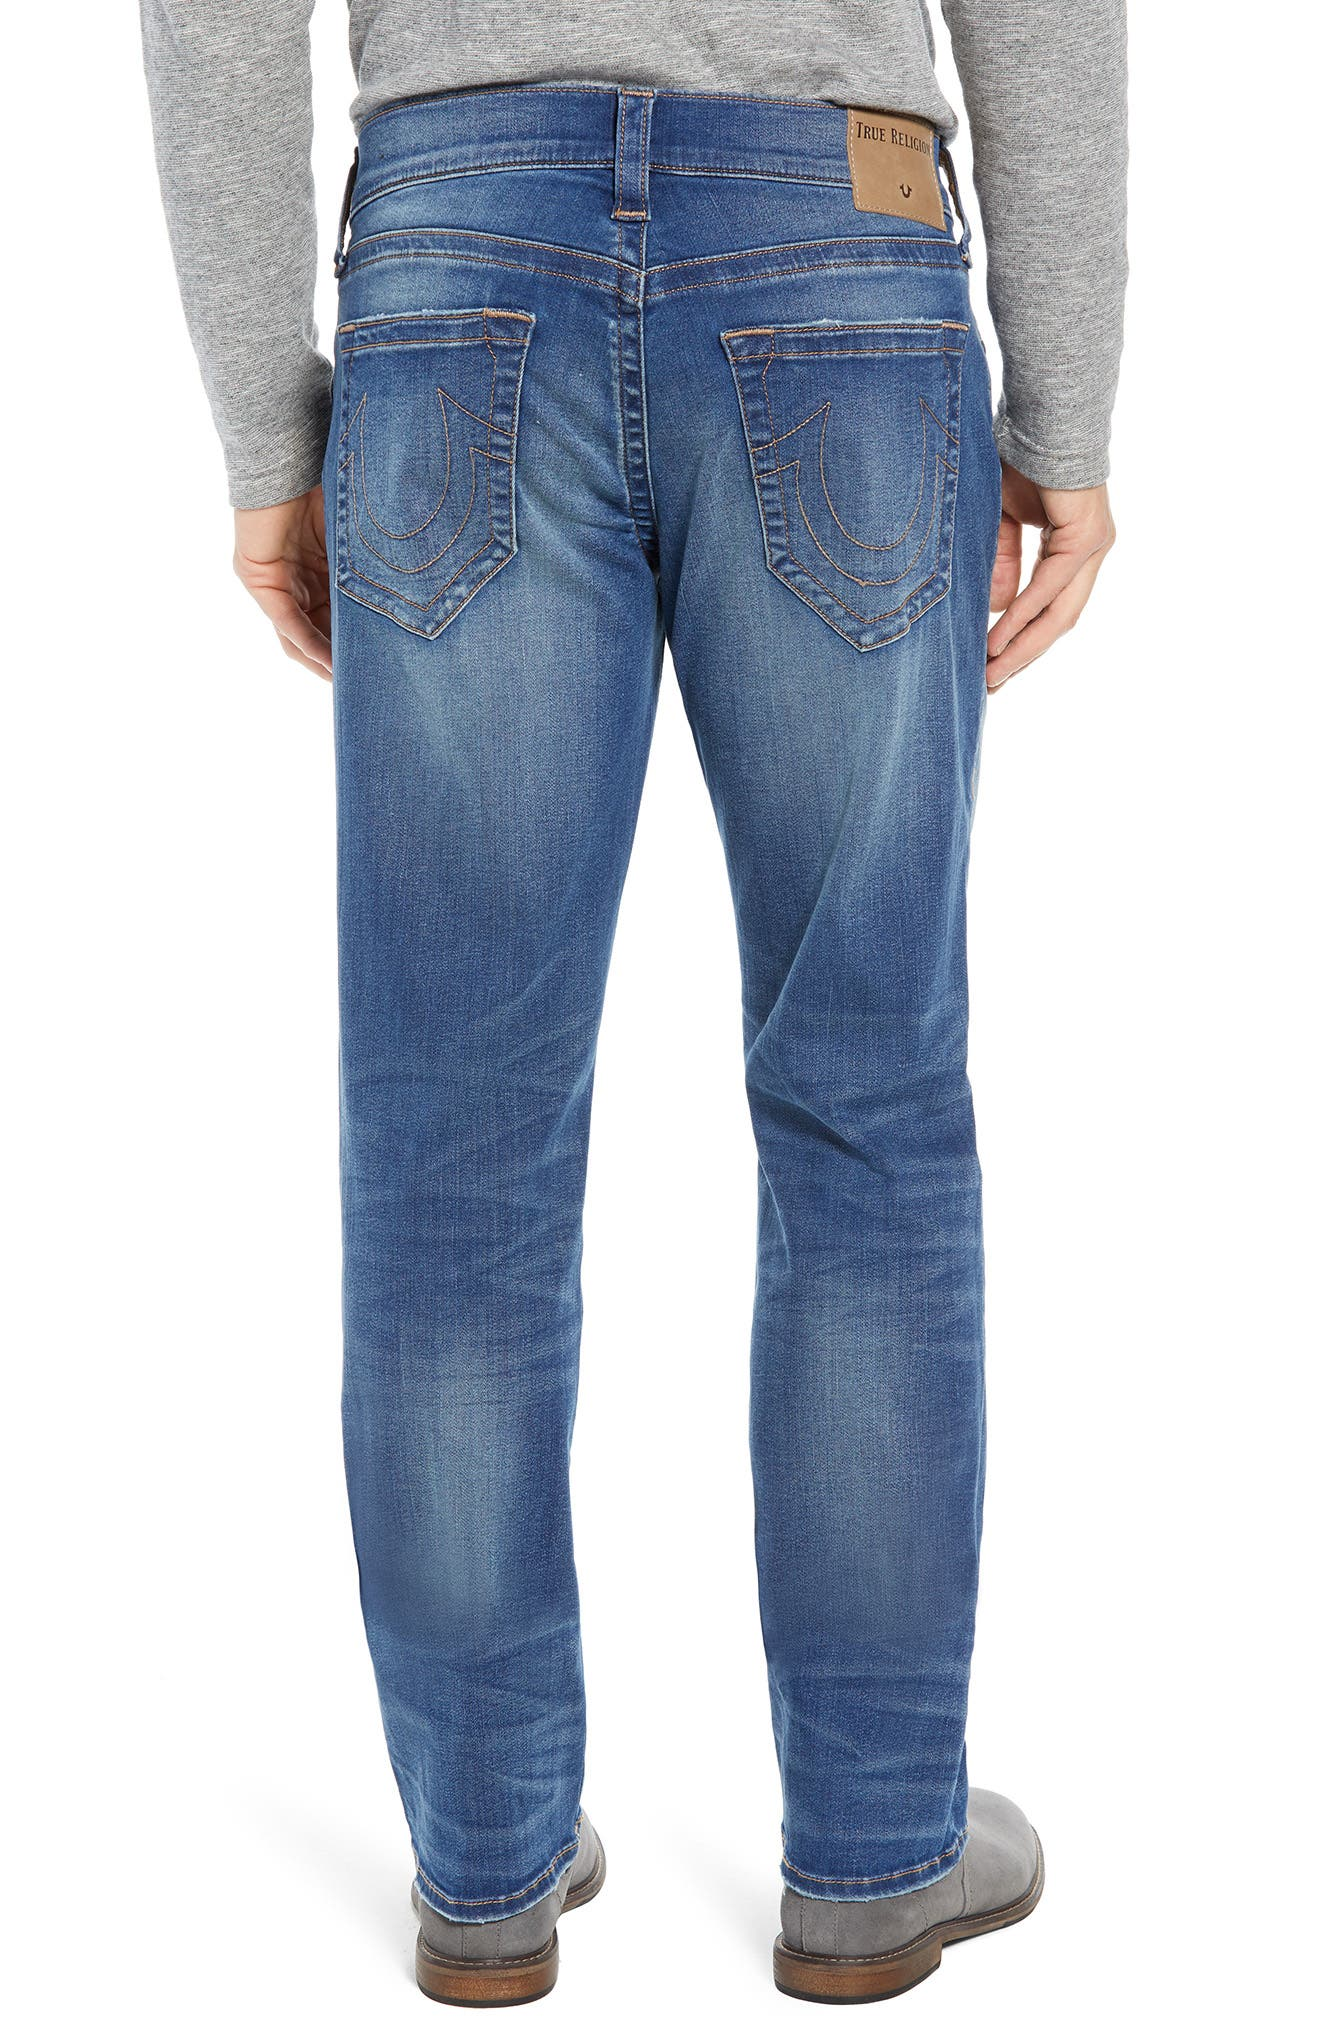 Ricky Relaxed Fit Jeans,                             Alternate thumbnail 2, color,                             SUPERNOVA BLUES